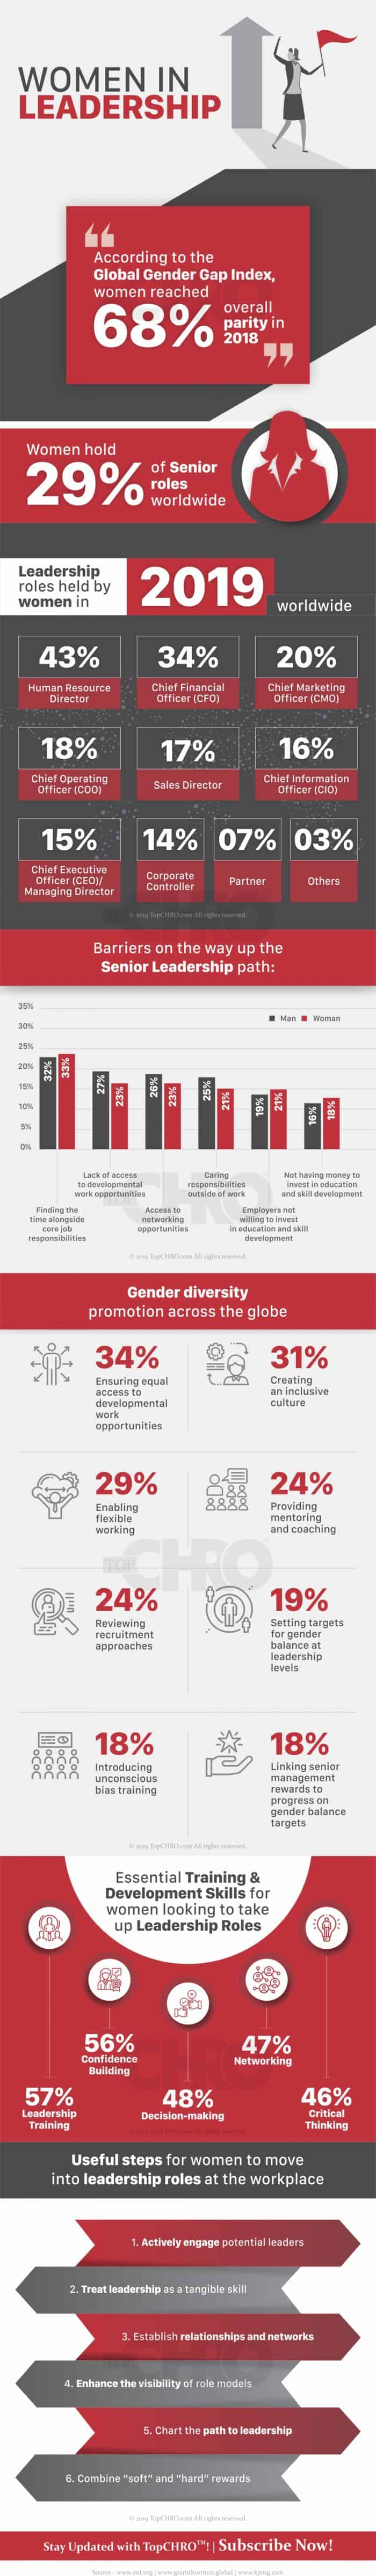 Women as Strong Leaders in the Workplace